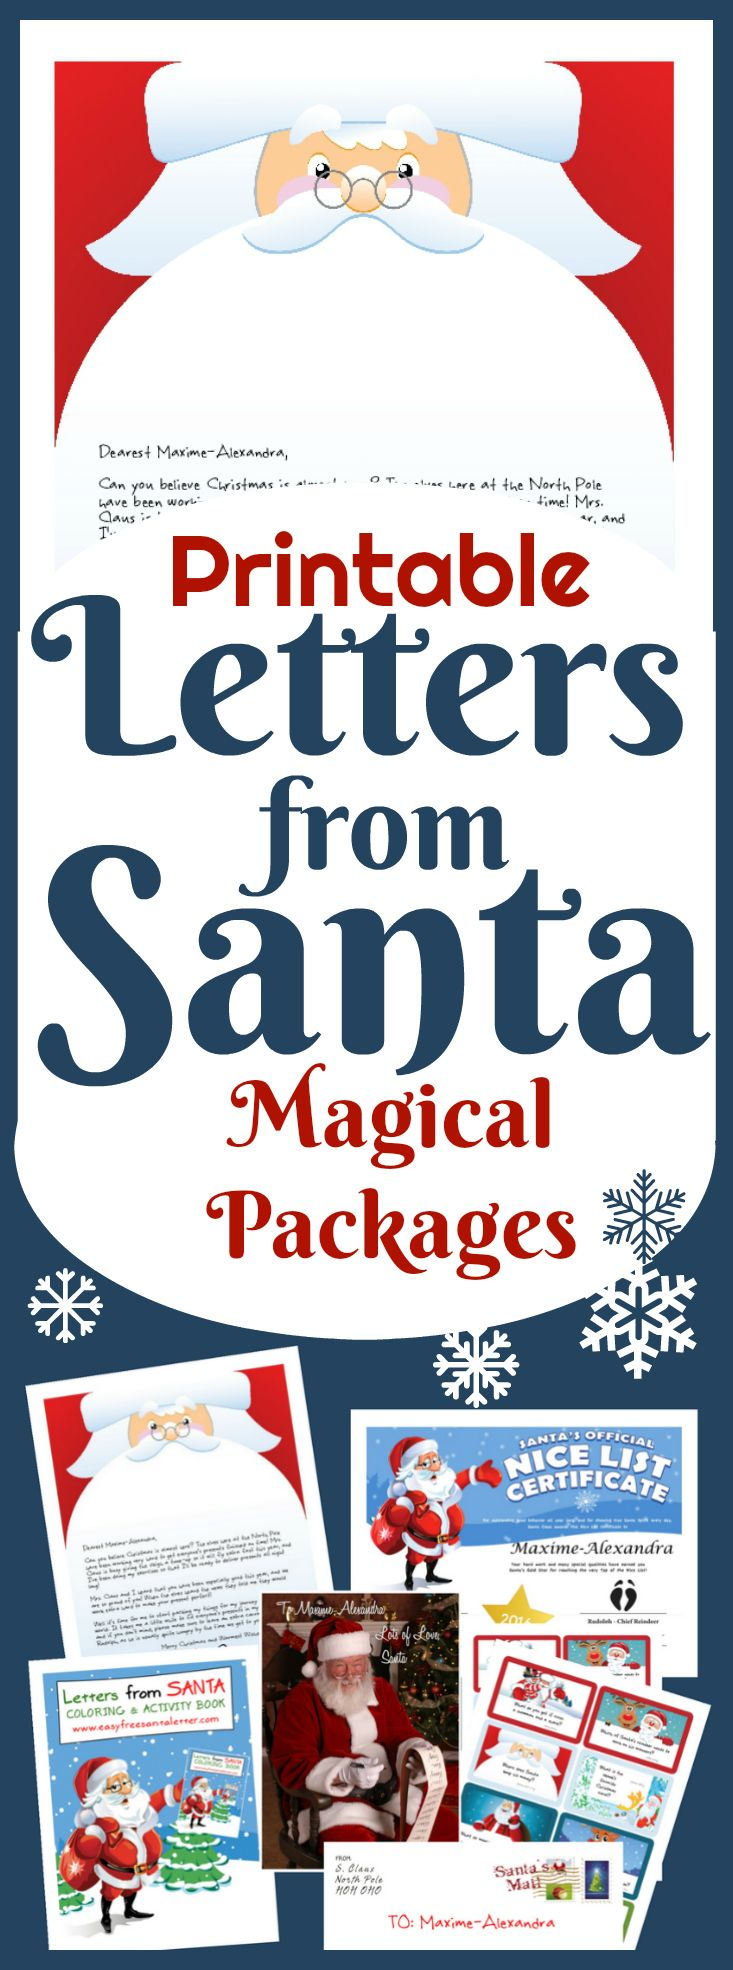 Best Printable Santa Letters Images On   Christmas